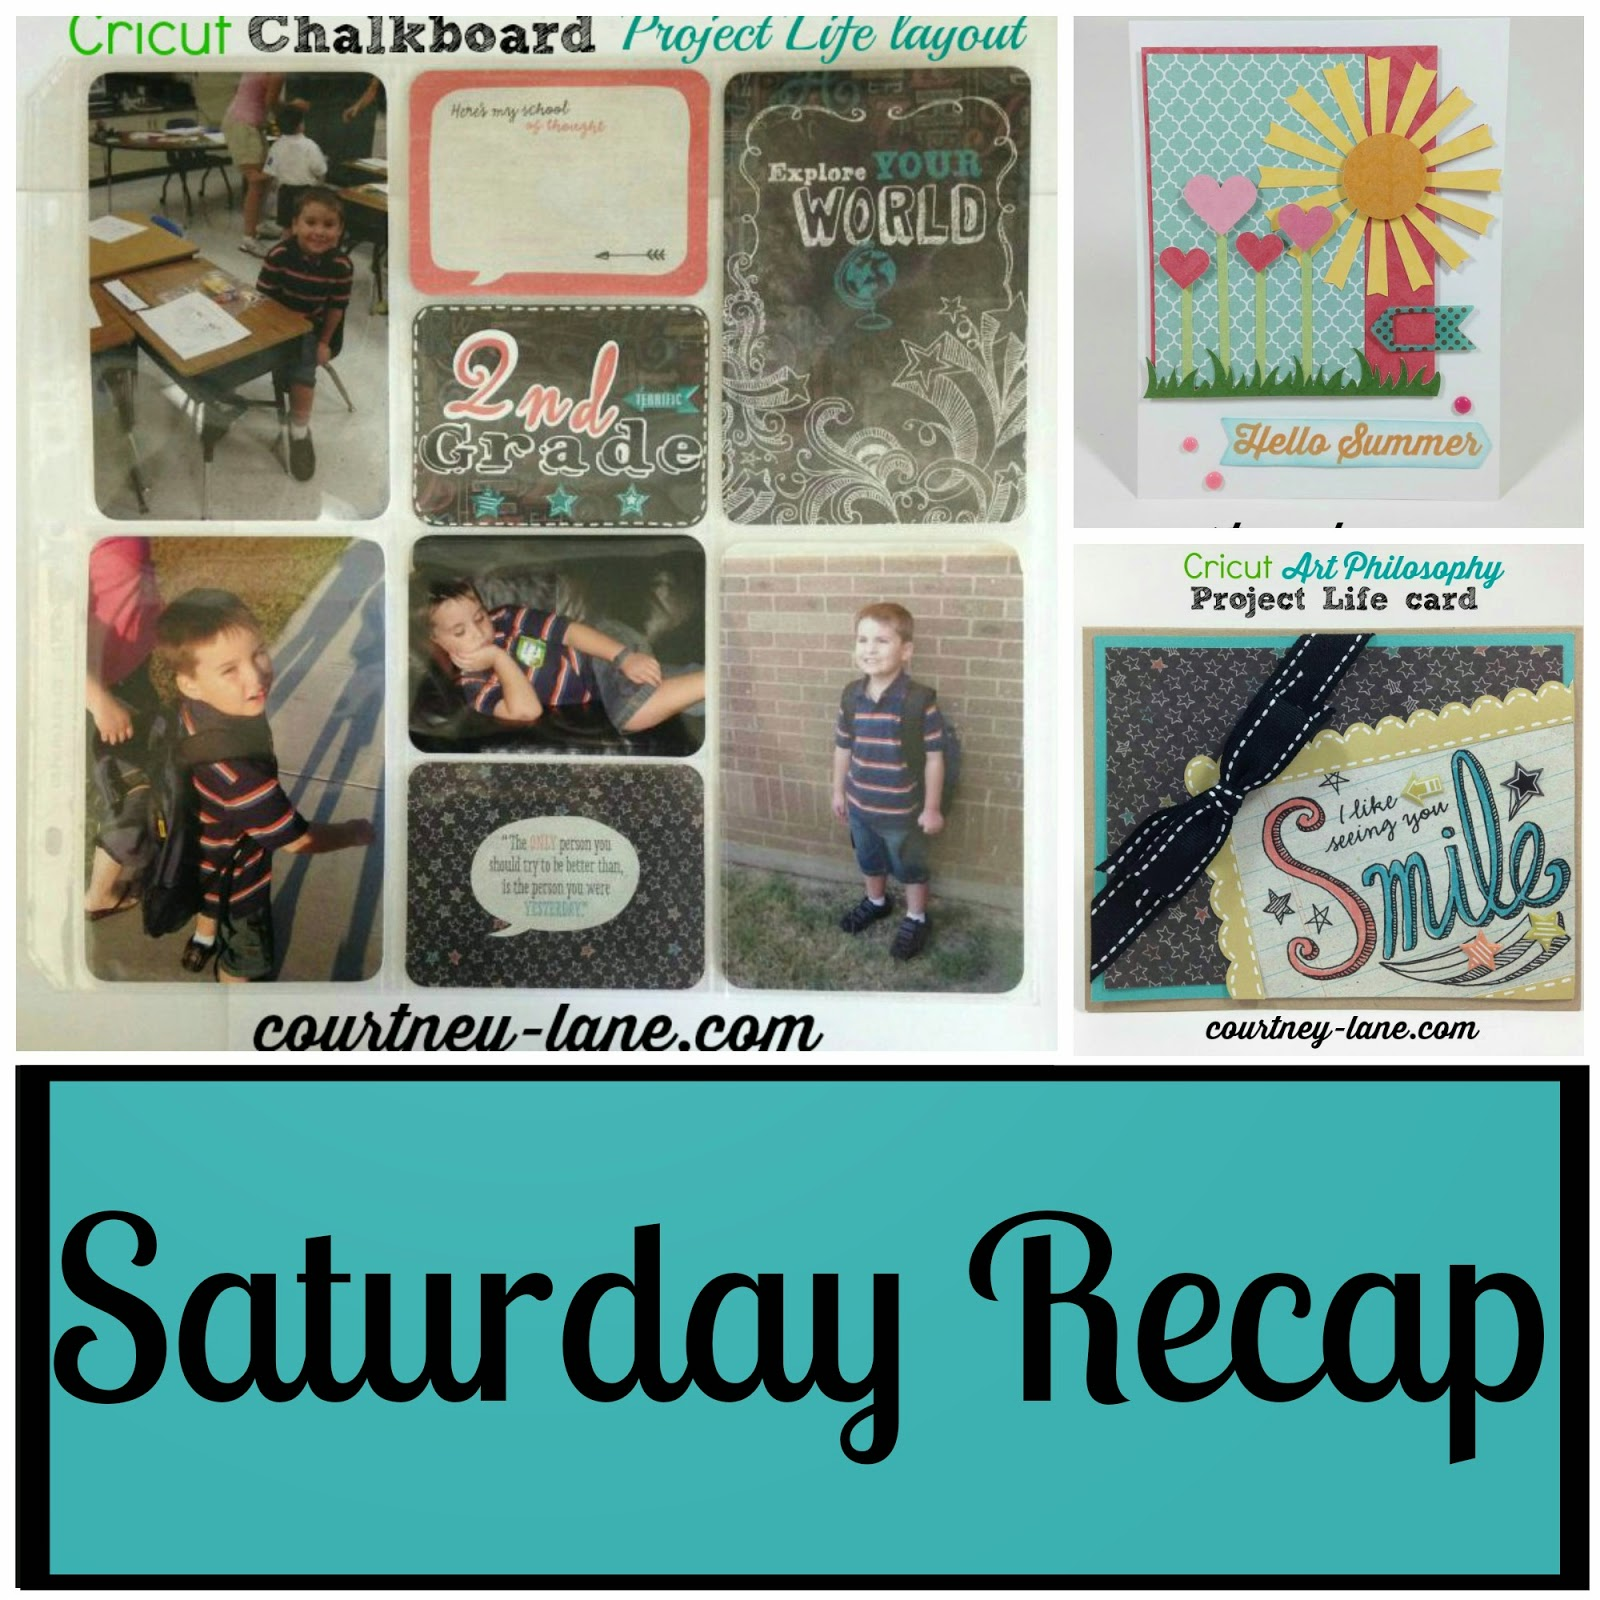 Saturday Recap collage